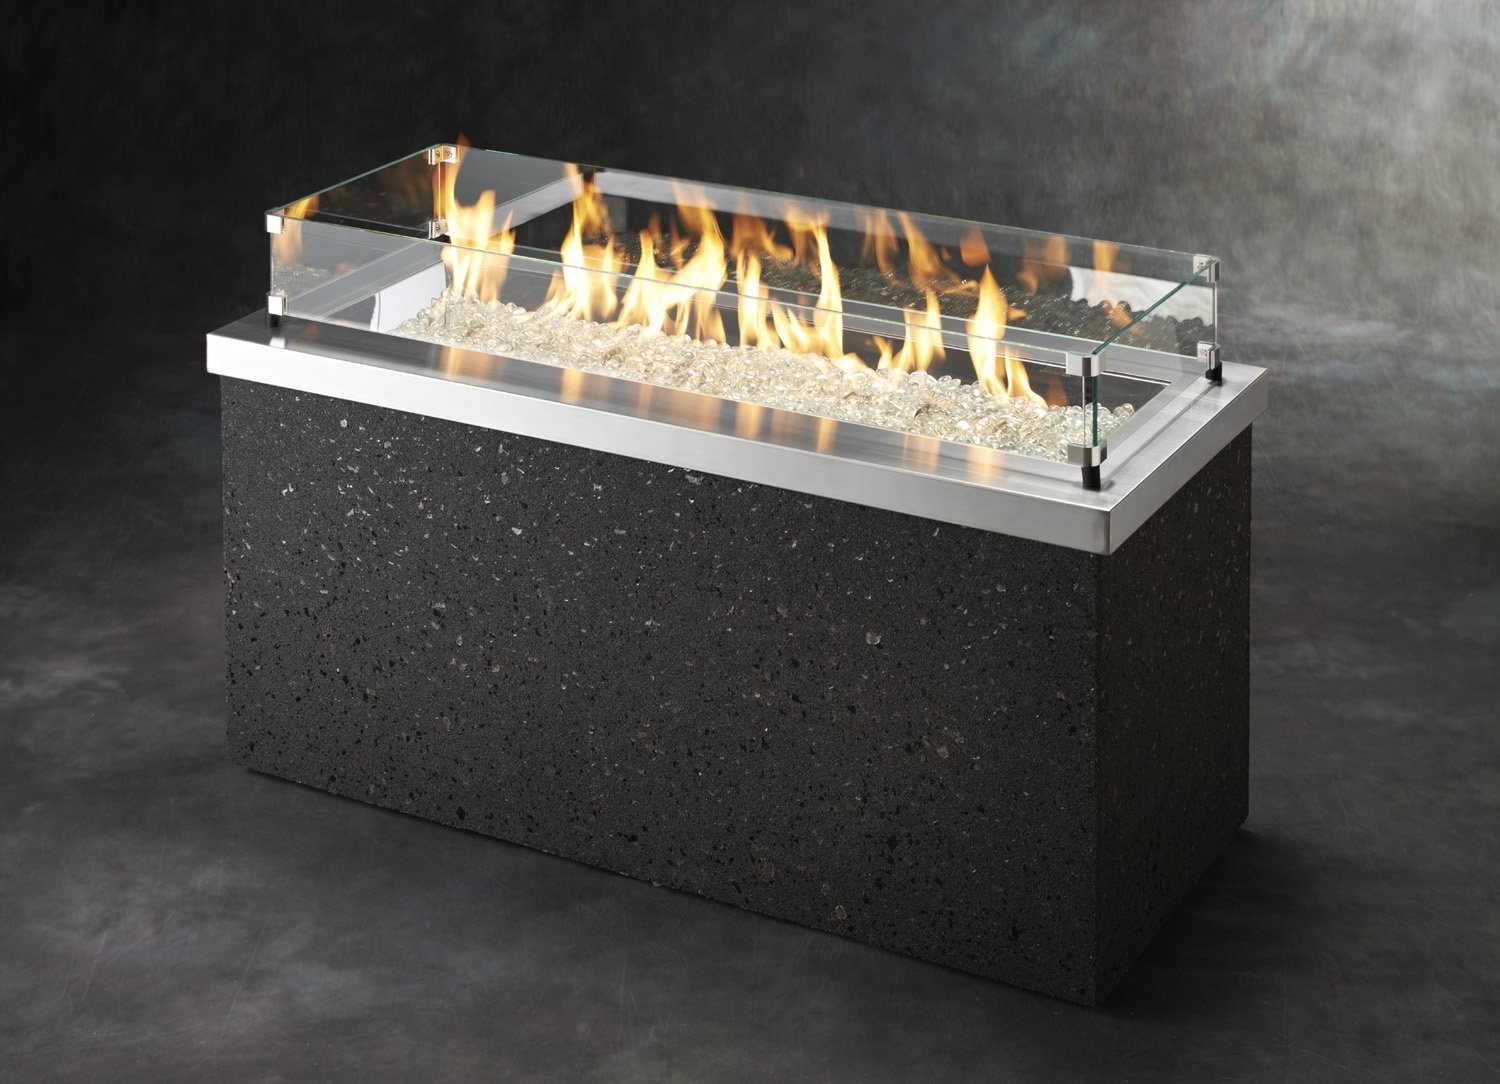 Key Largo, granite, dining table, promotion, sale, fire pit, firepit, fire table,  firetable, Outdoor Greatroom Company